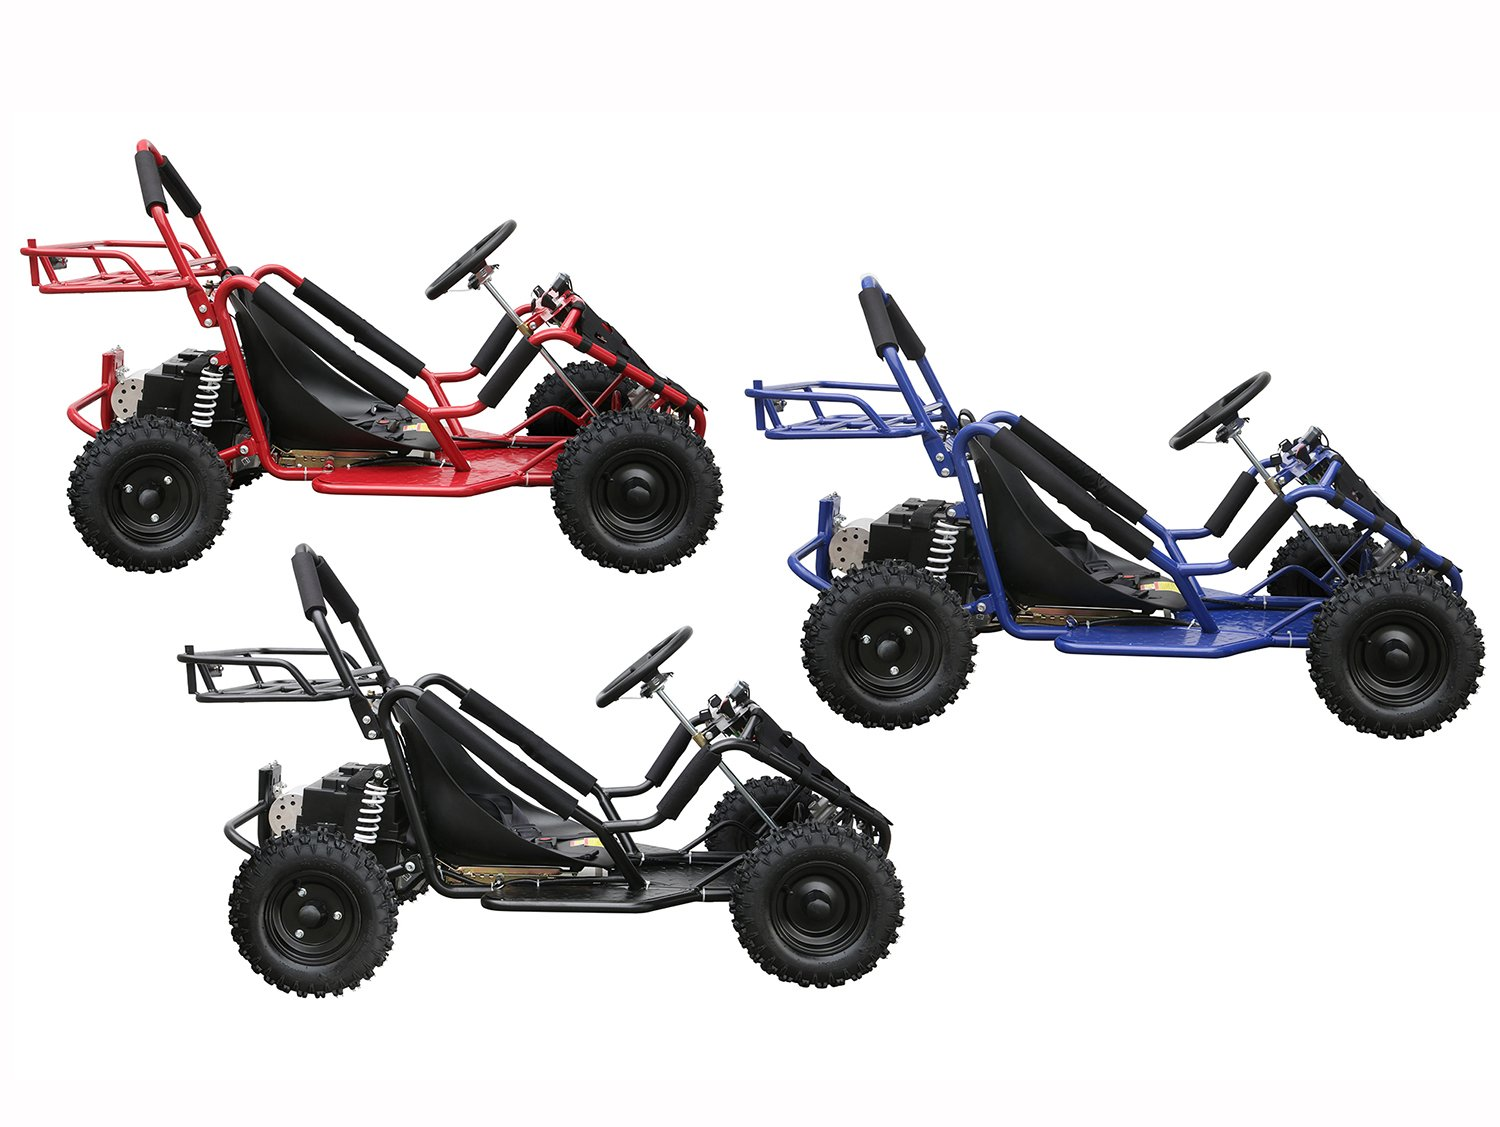 JCMOTO Electric Go Karts For Kids 4 Four Wheelers Off Road Tire 48v 1800w Black (Upgraded versions) by JCMOTO (Image #7)